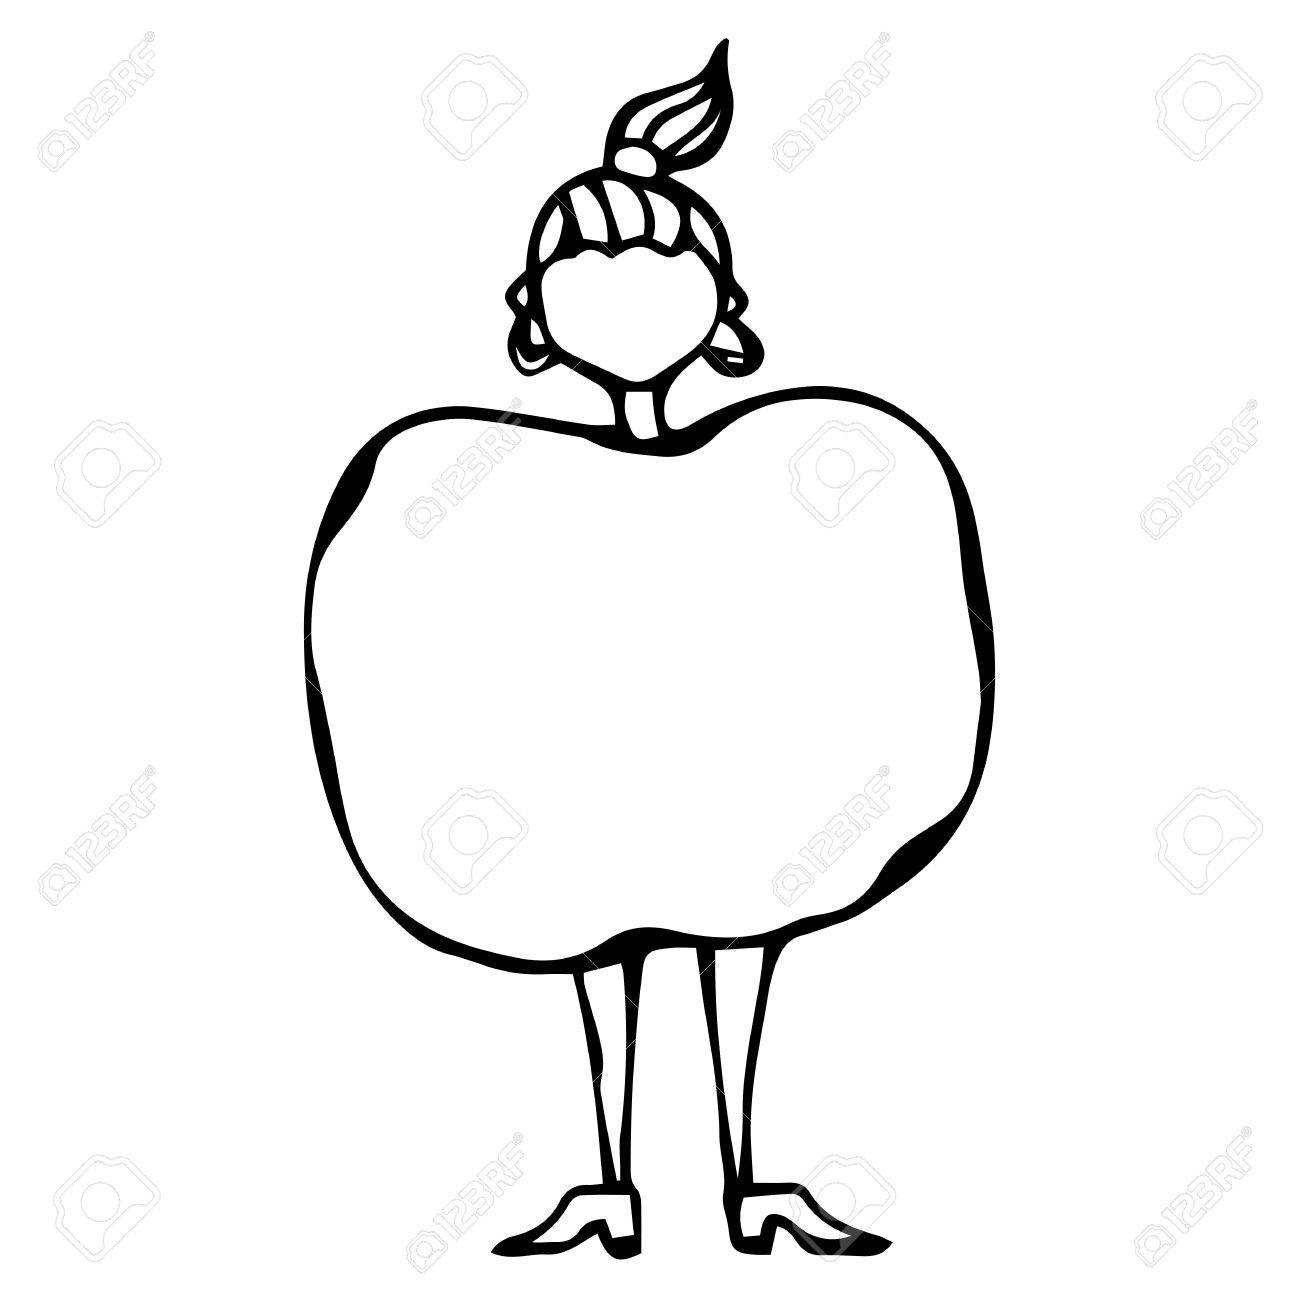 1300x1300 Caricature Apple Female Body Shape Sketch. Hand Drawn Vector